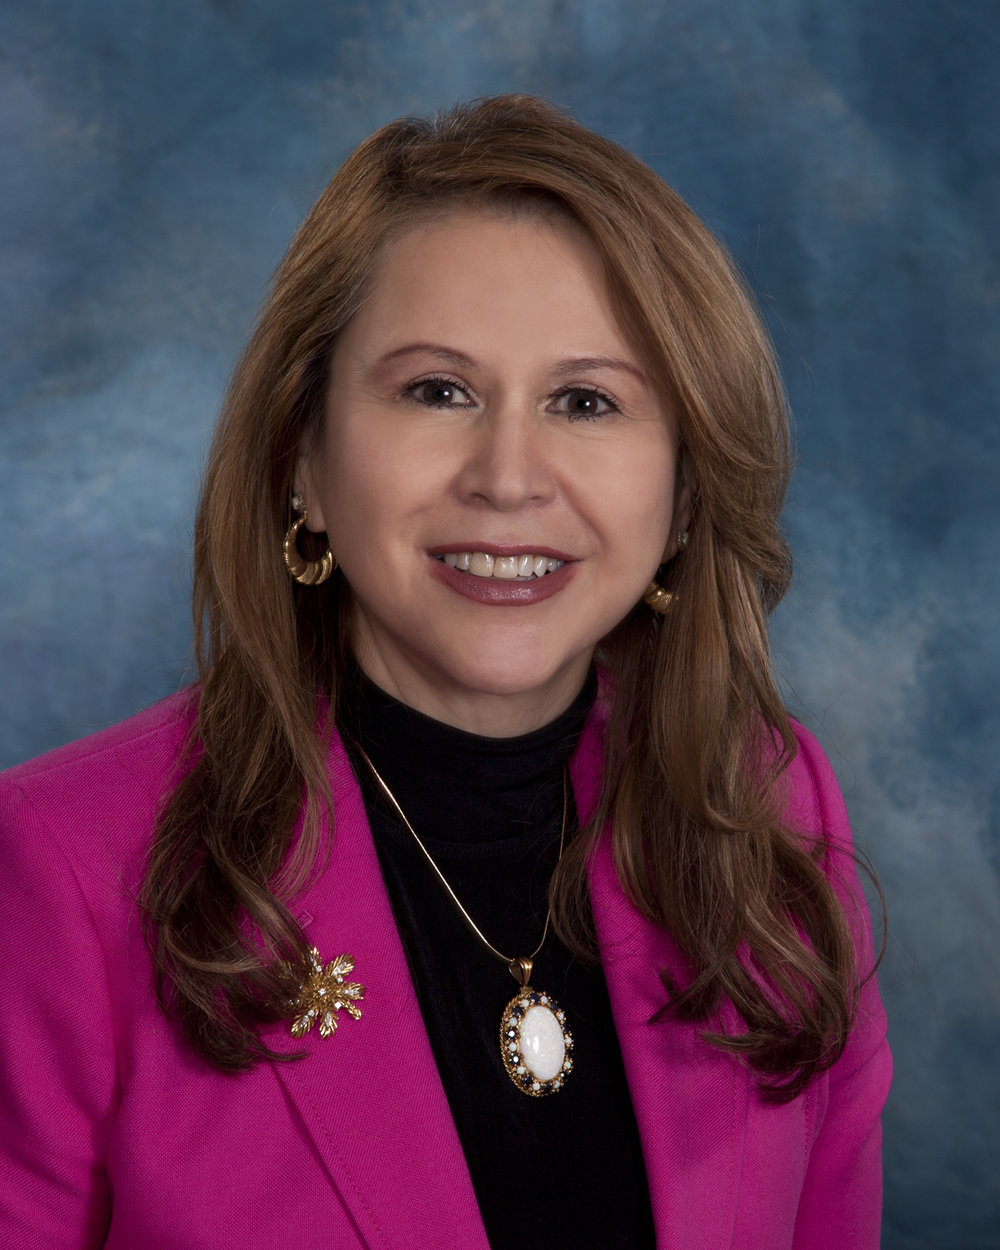 Over 30 years of providing Bankruptcy relief to the People of Southern Colorado.  - Christine Pacheco-Koveleski, Esq. licensed in Colorado, Virginia and the Federal District of Colorado.